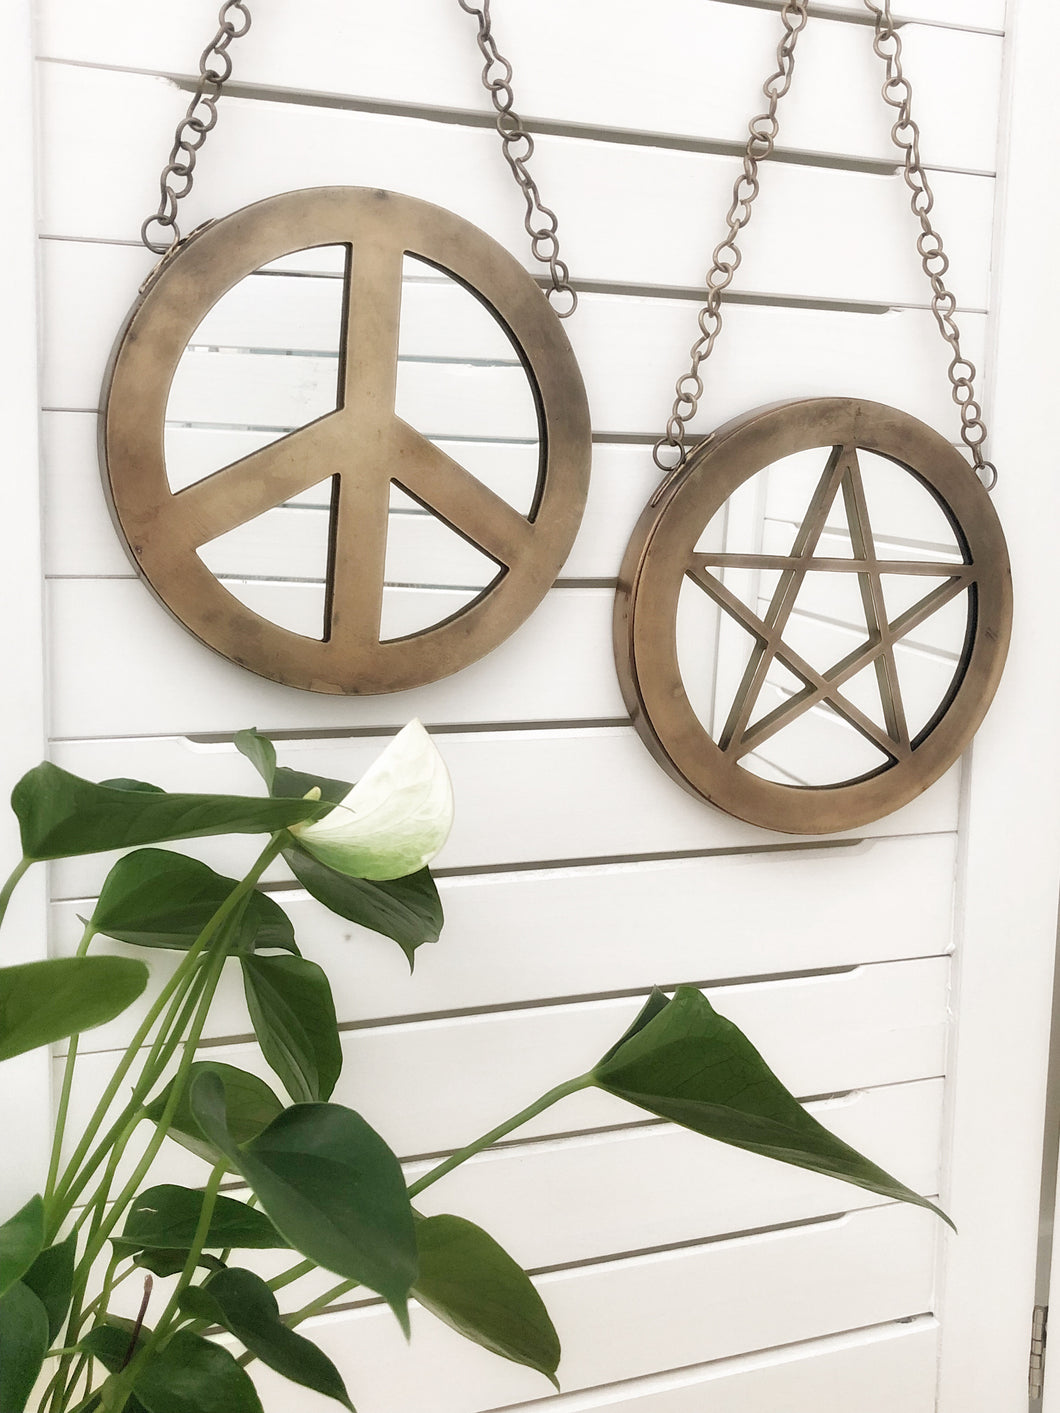 Hanging mirrors- peace and pentacle